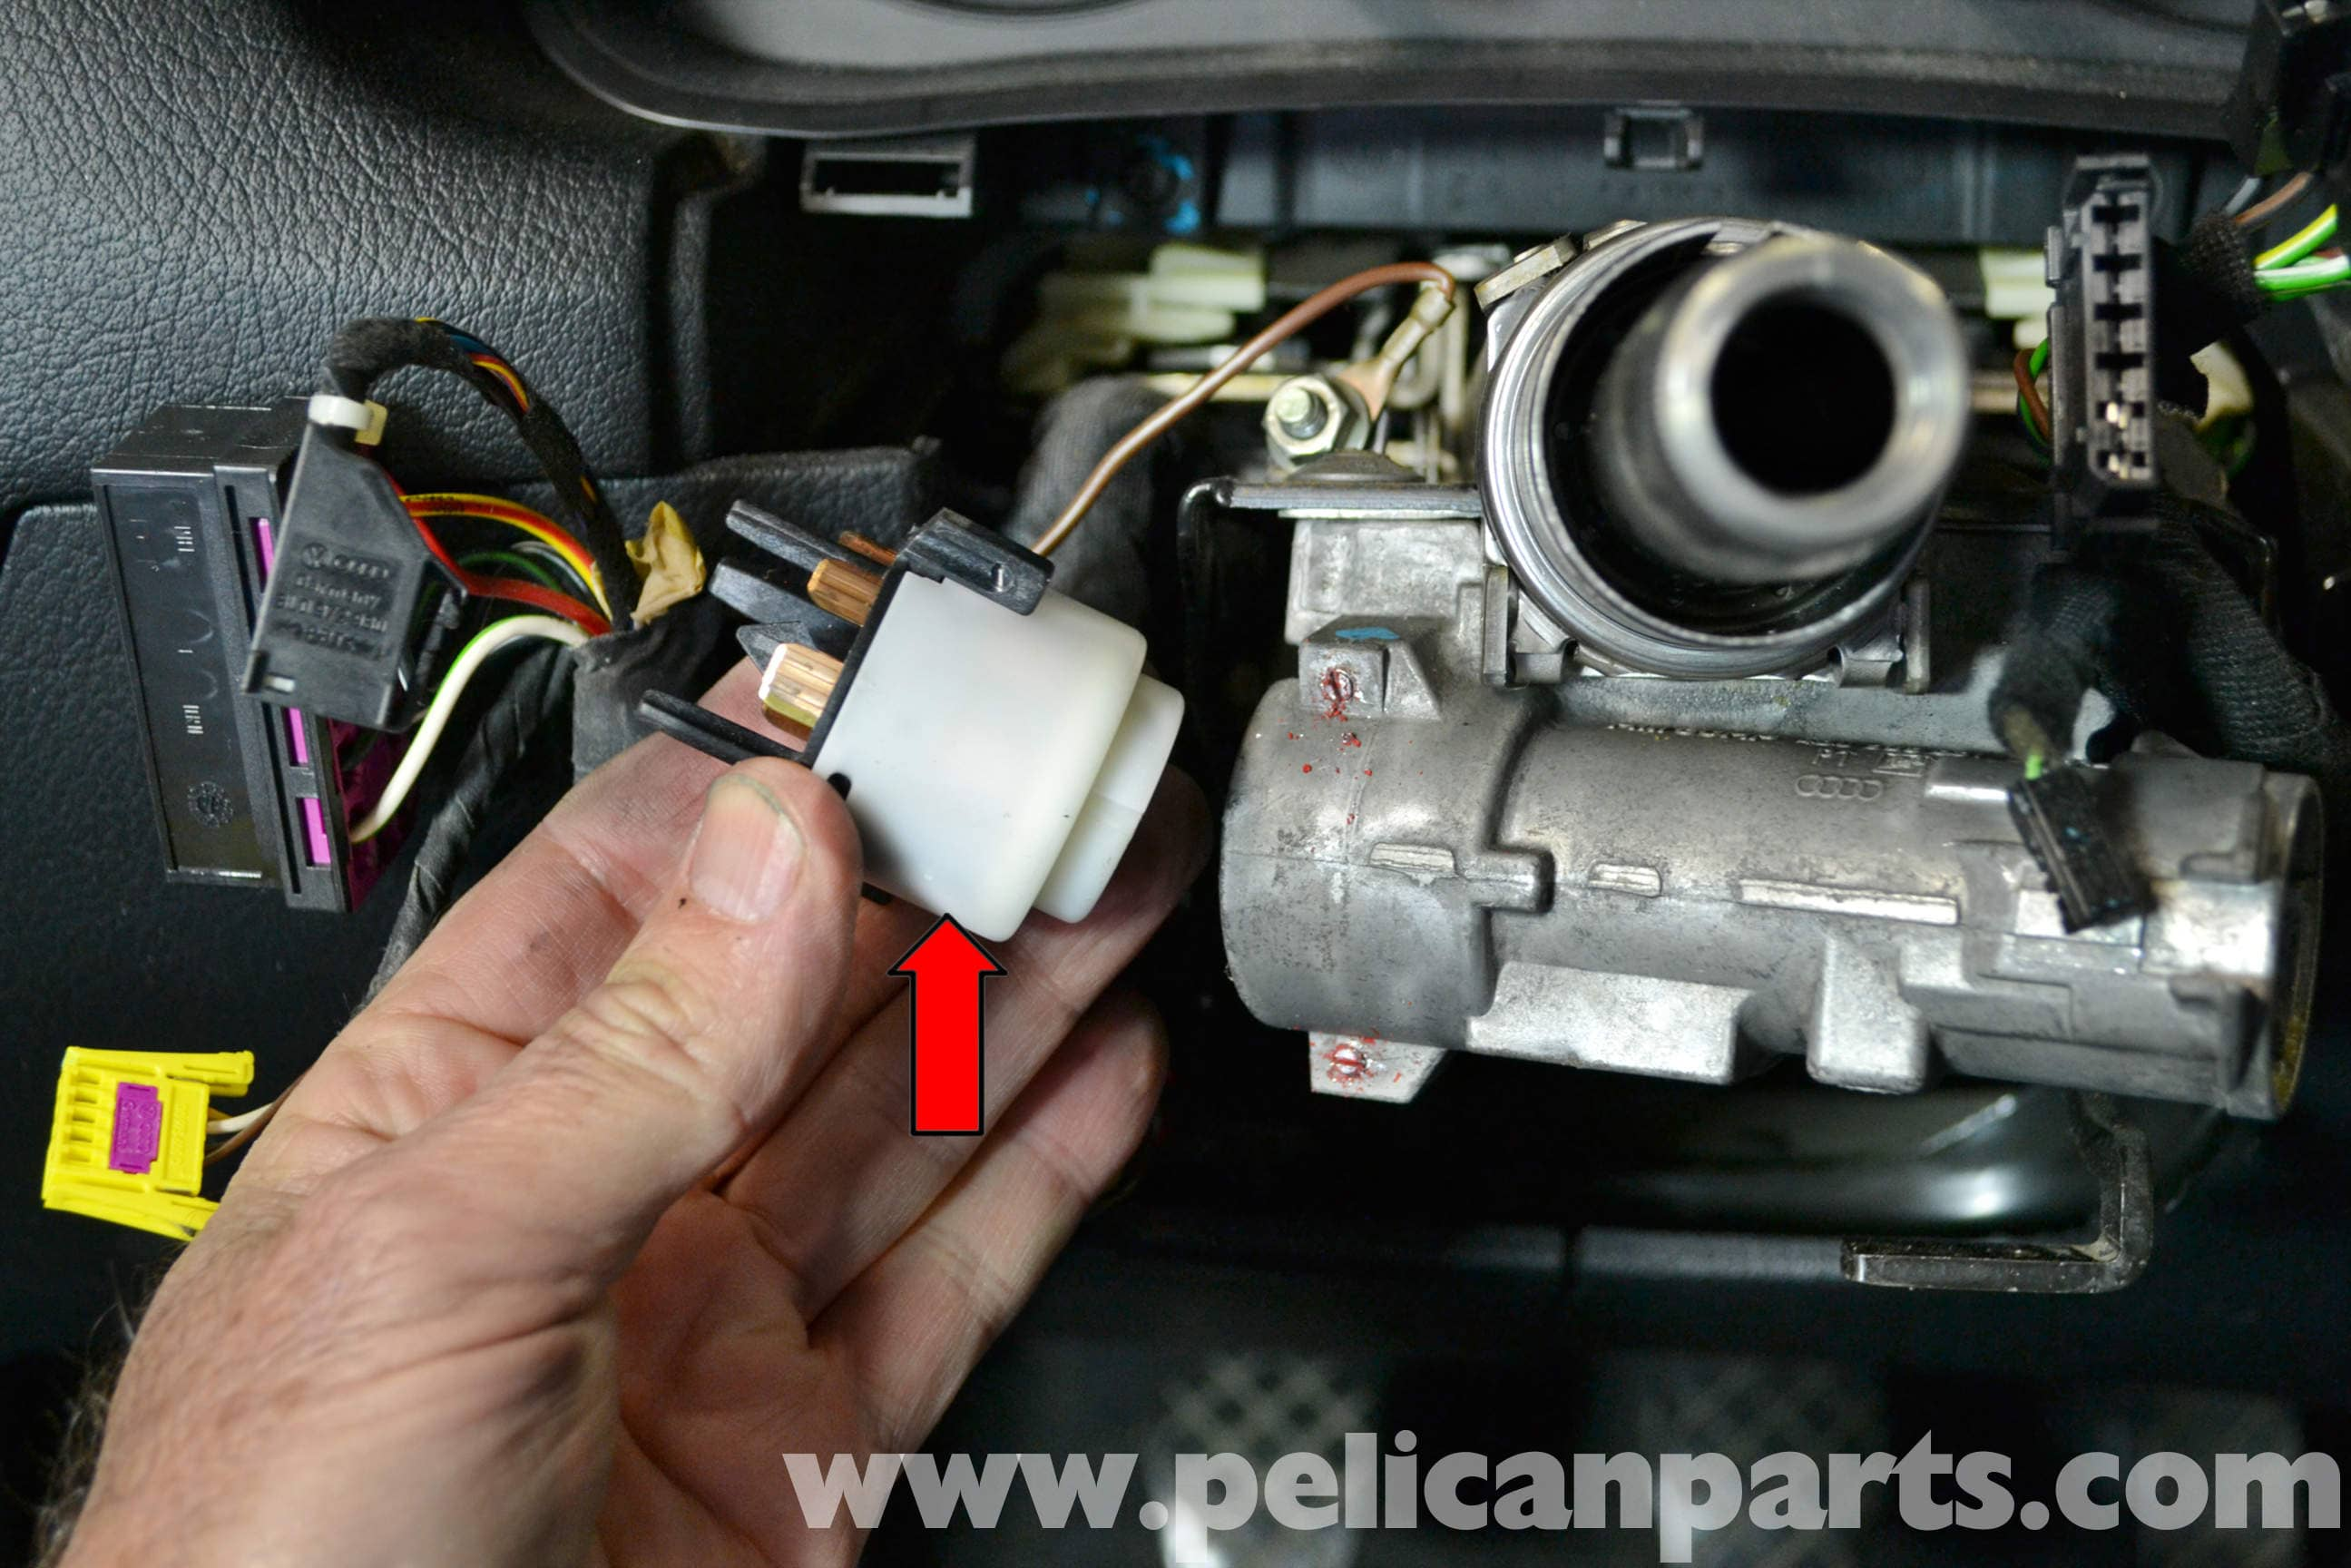 Skoda Octavia Door Lock Problems Audi A4 B6 Ignition Switch And Lock Cylinder Replacement